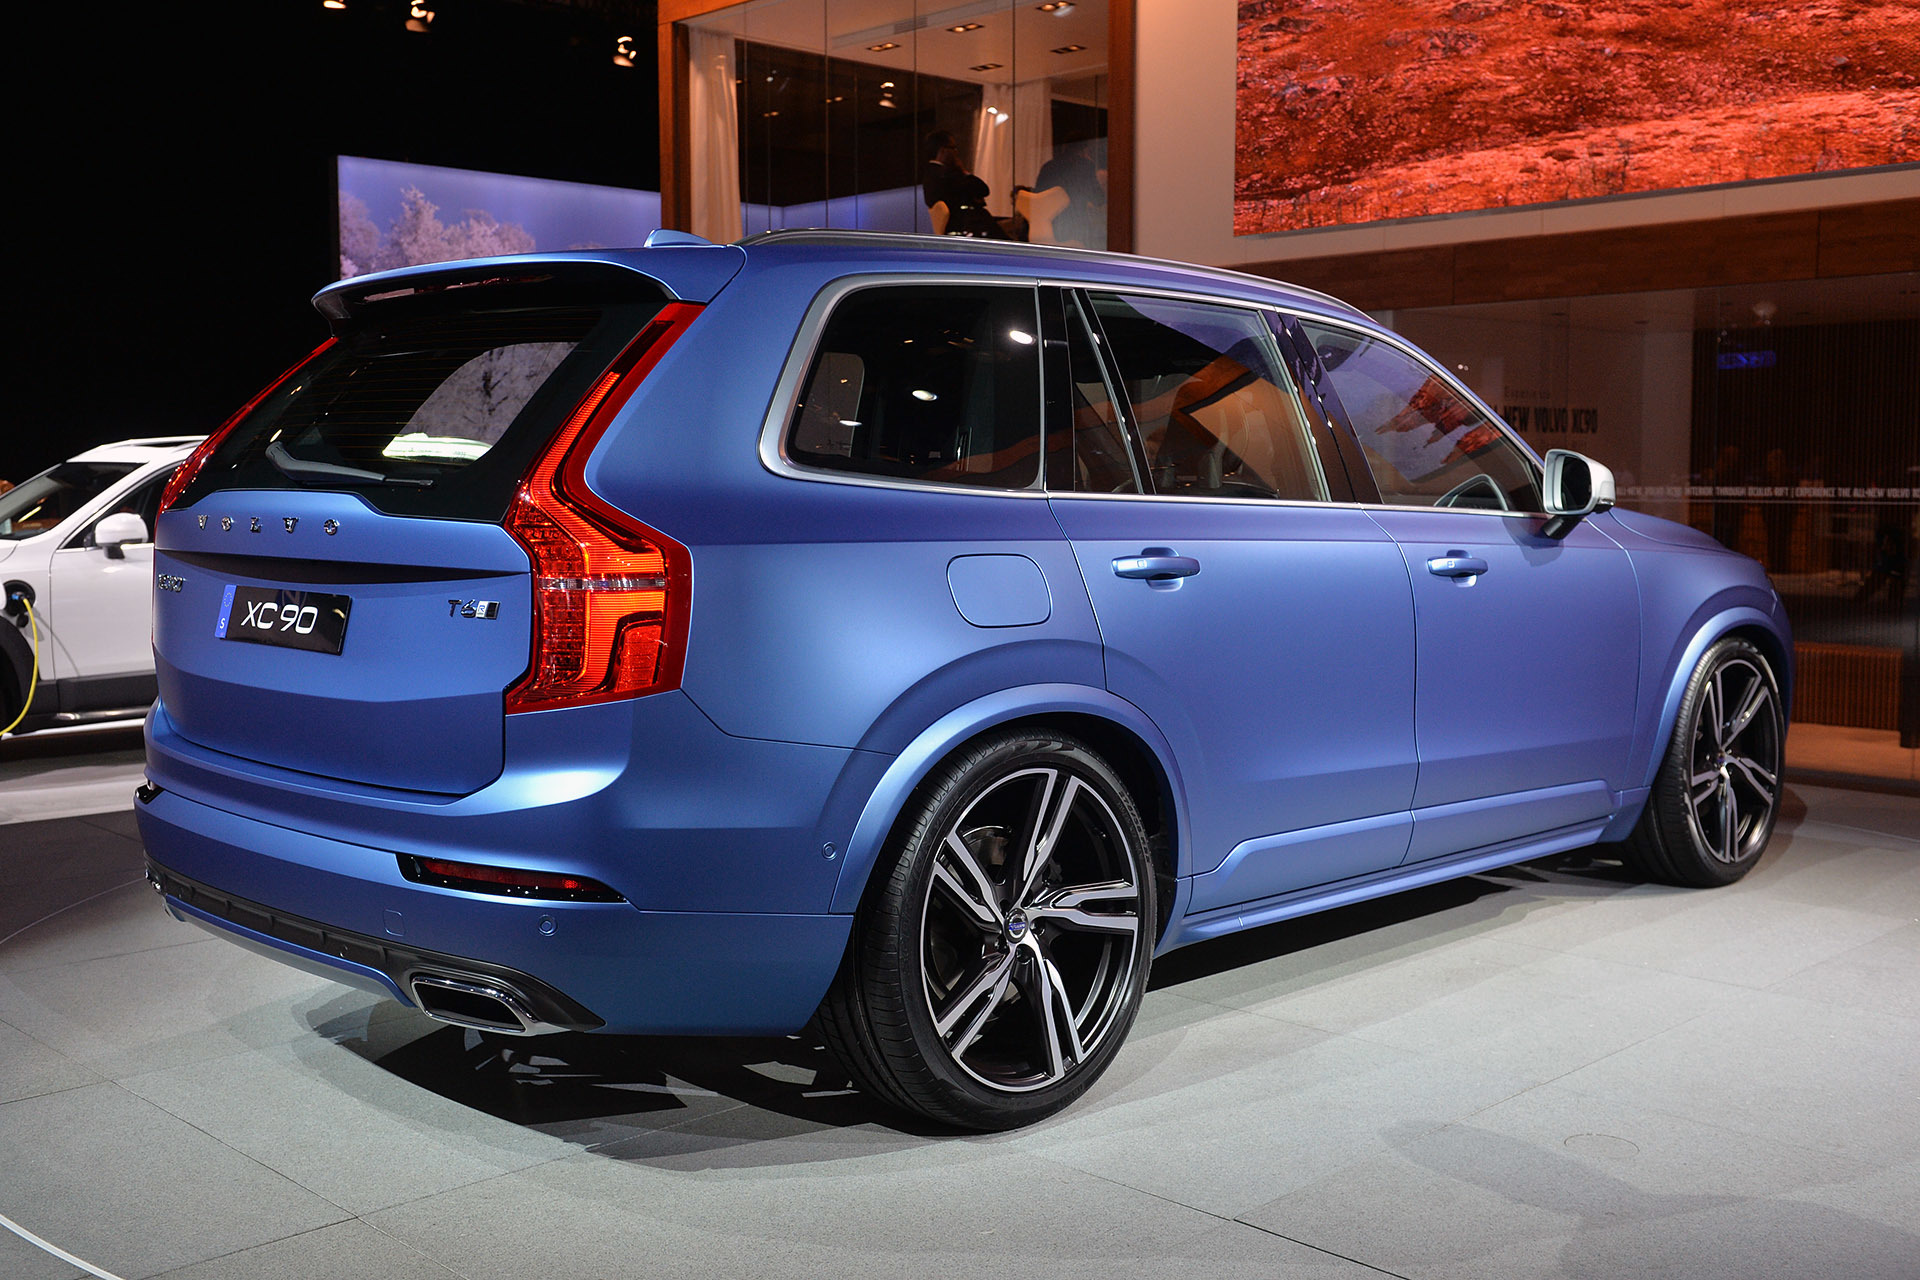 2015 volvo xc90 r design detroit 2015 photo gallery. Black Bedroom Furniture Sets. Home Design Ideas